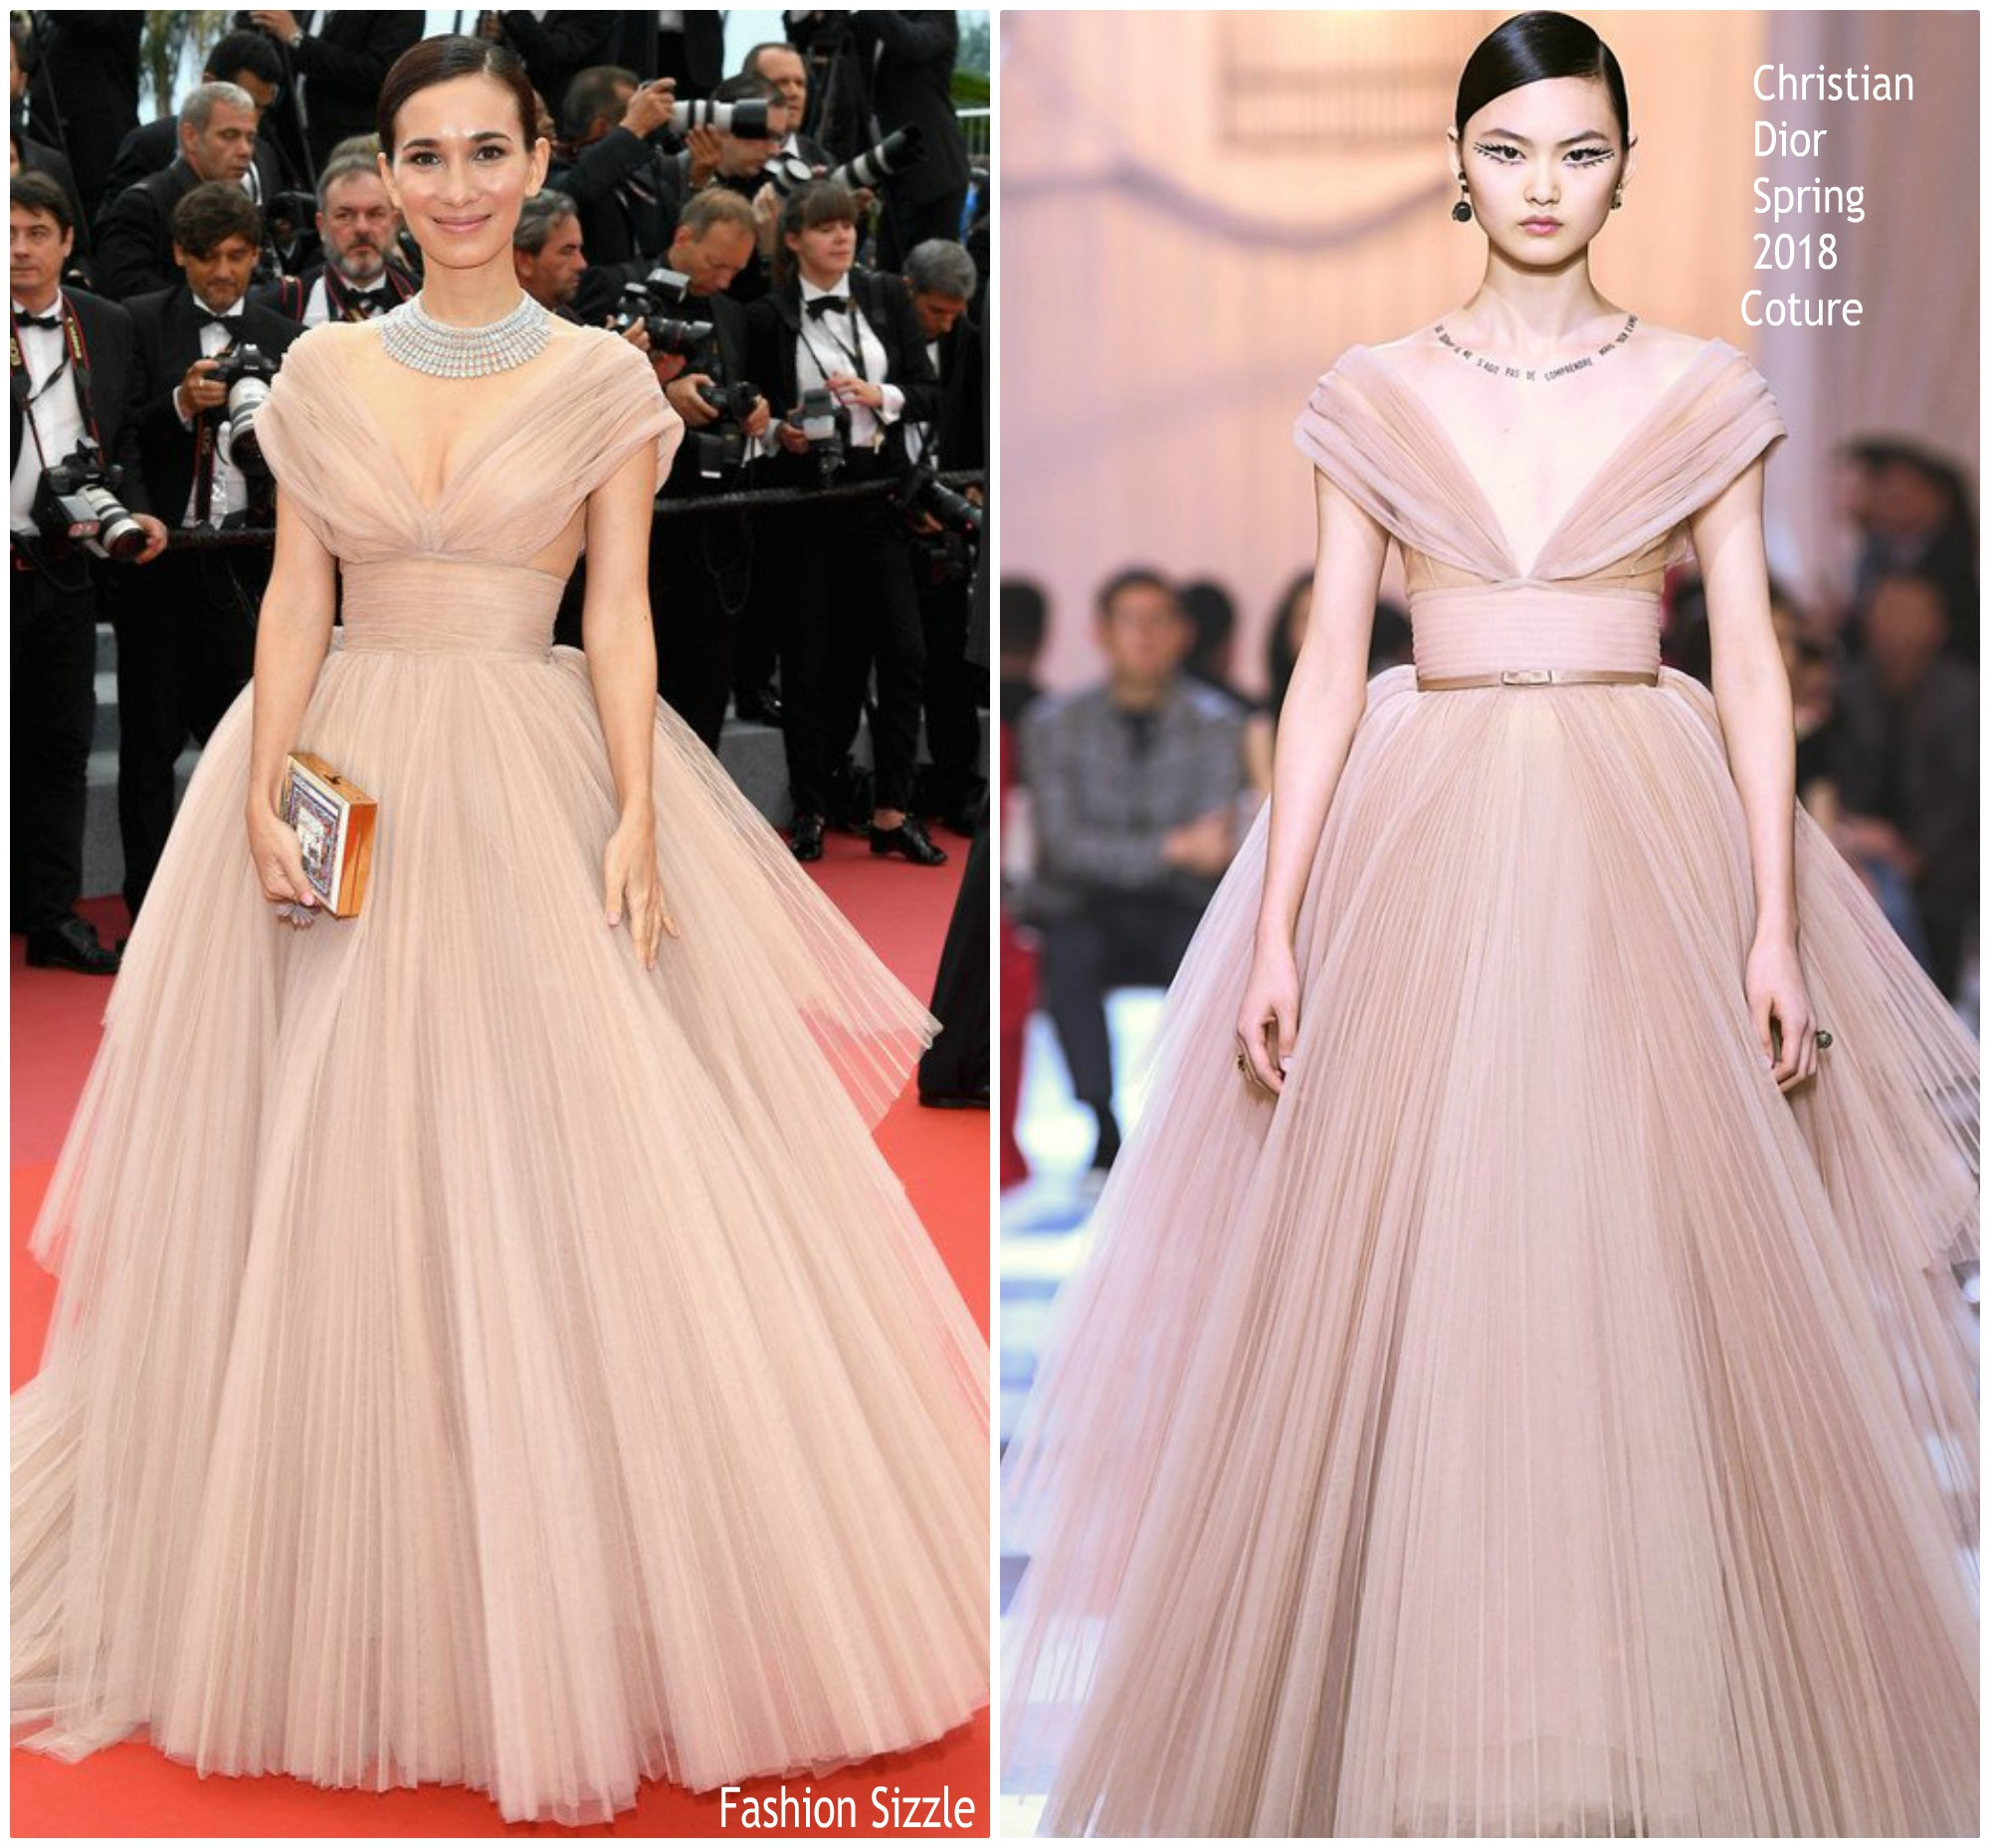 celina-jade-in-christian-dior-couture-sorry-angel-plaire-aimer-et-courir-vite-cannes-film-festival-premiere